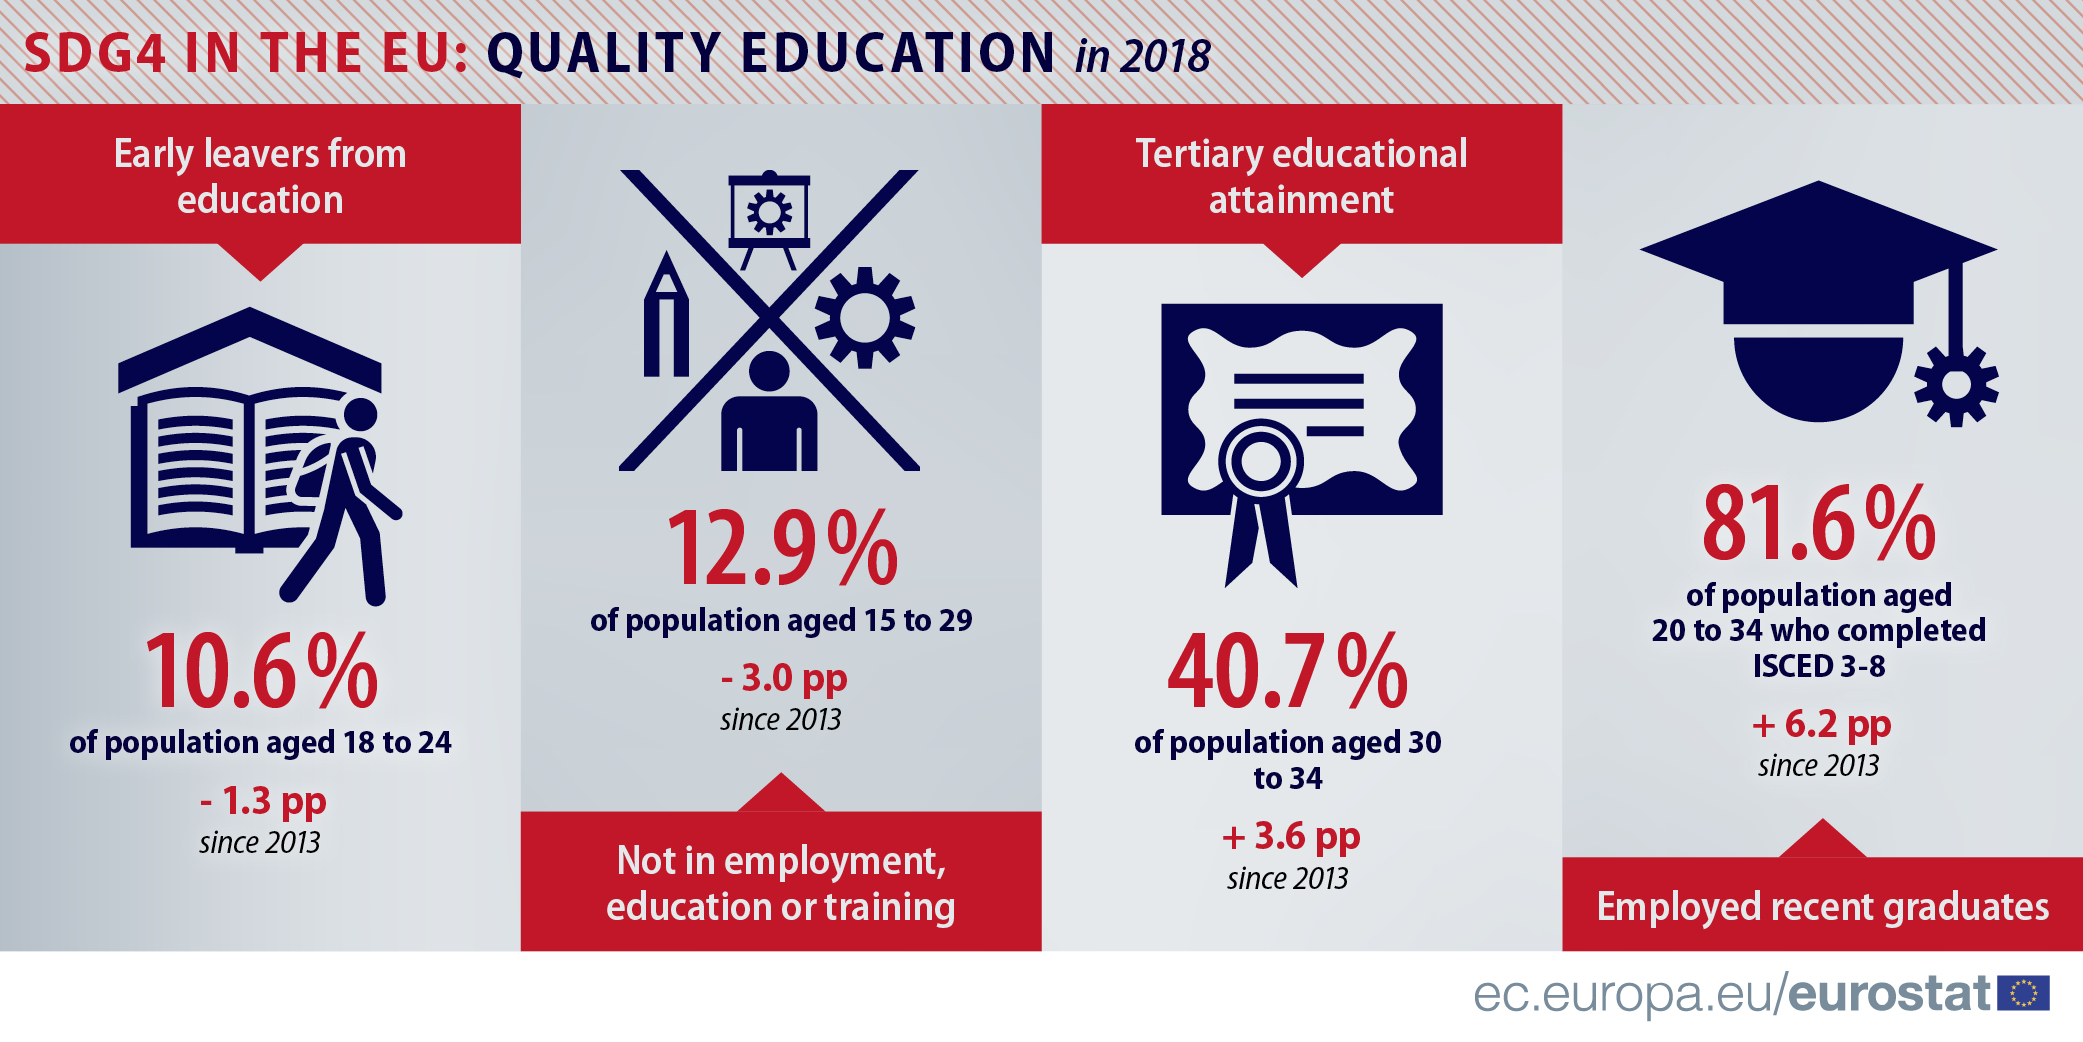 Infographic: SDG4 in the EU - Quality education (2018)